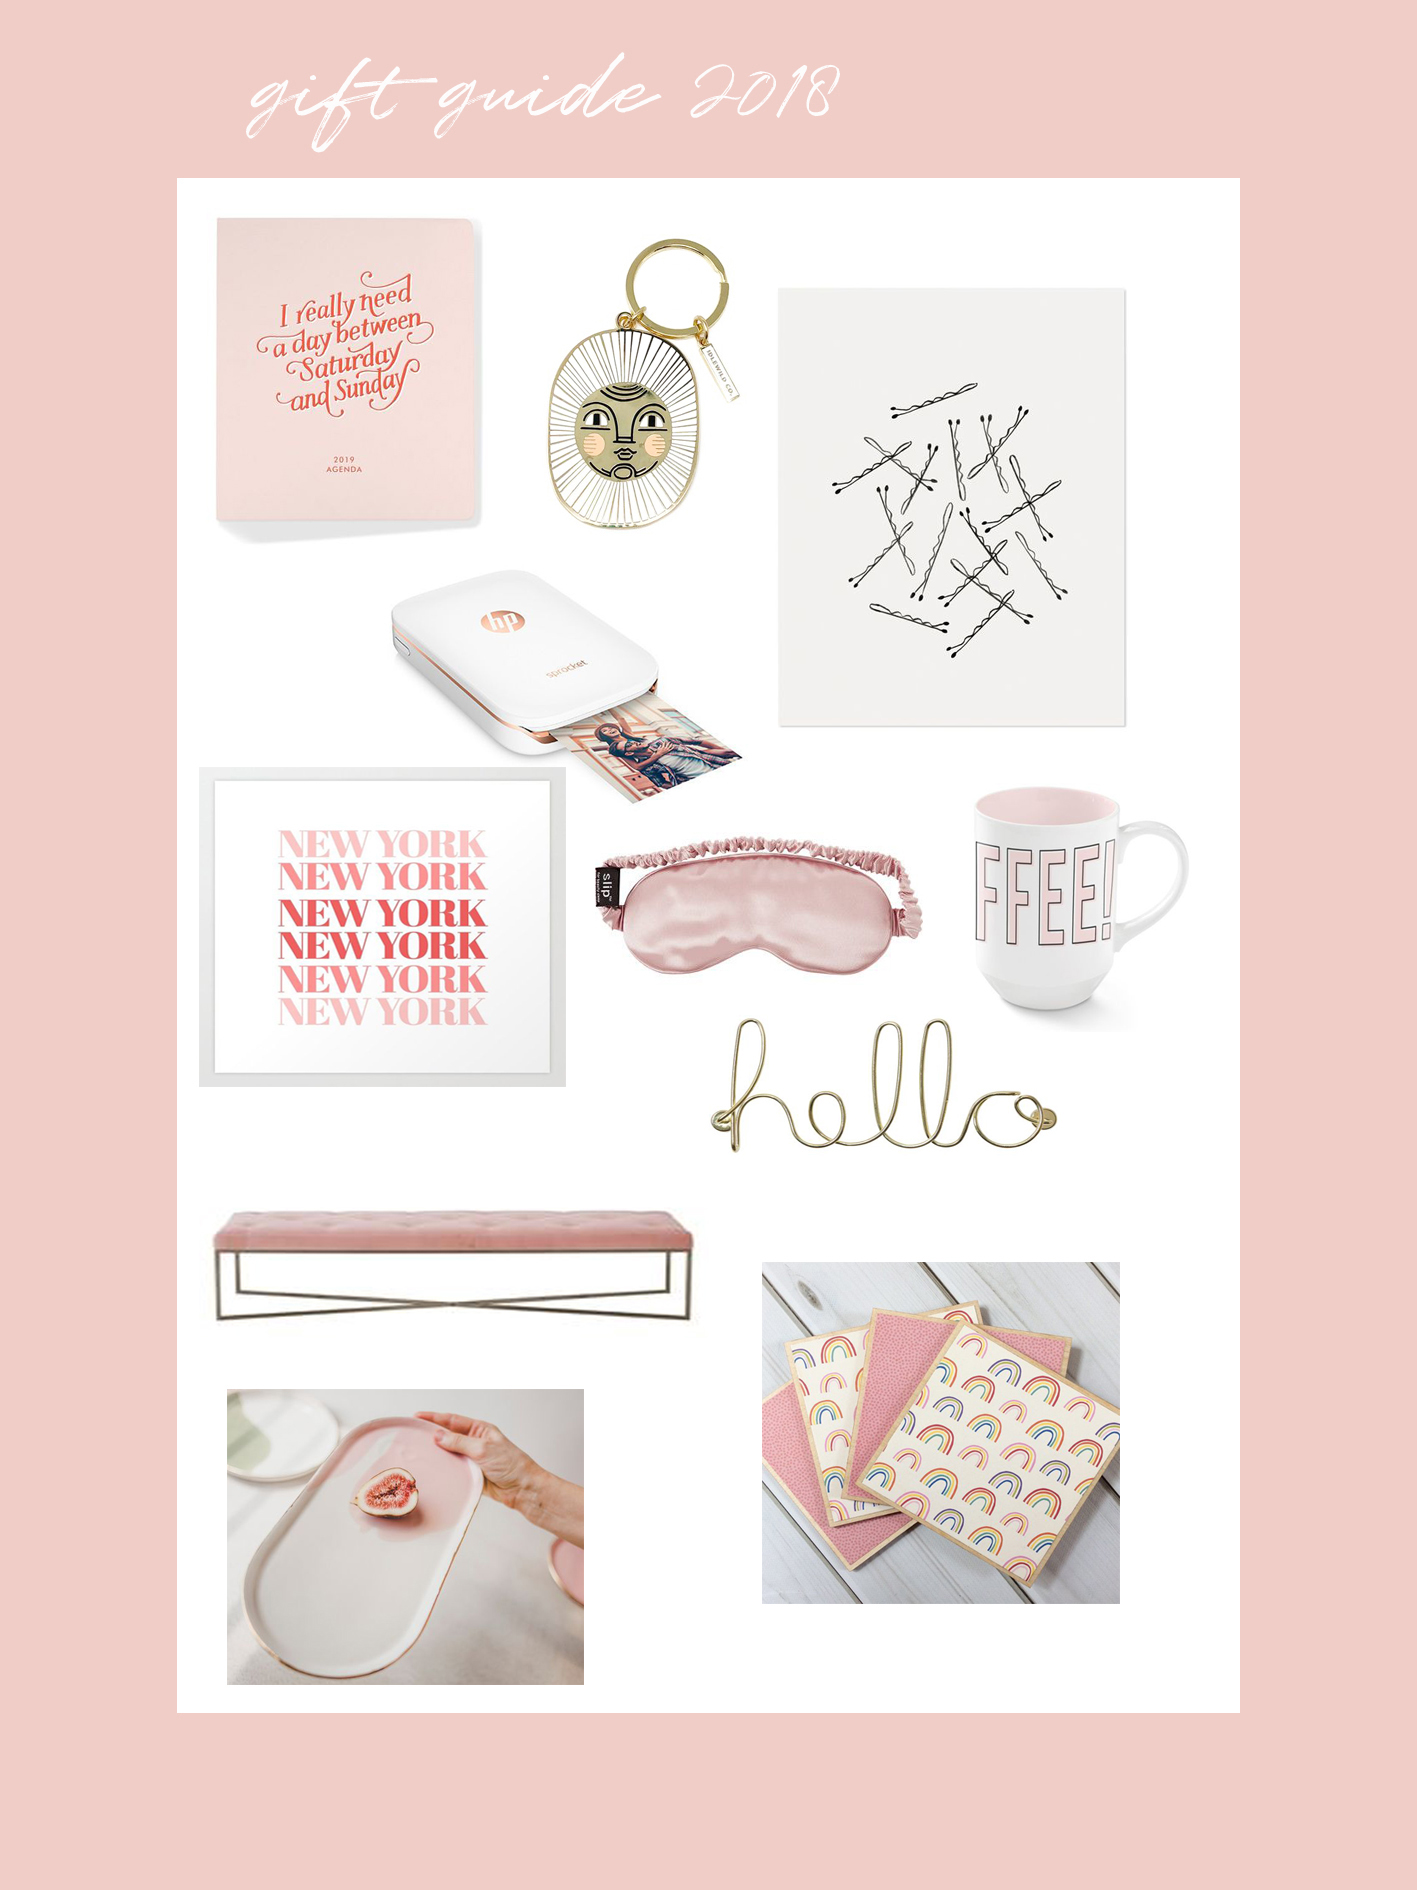 IEB gift guide 2018 - home